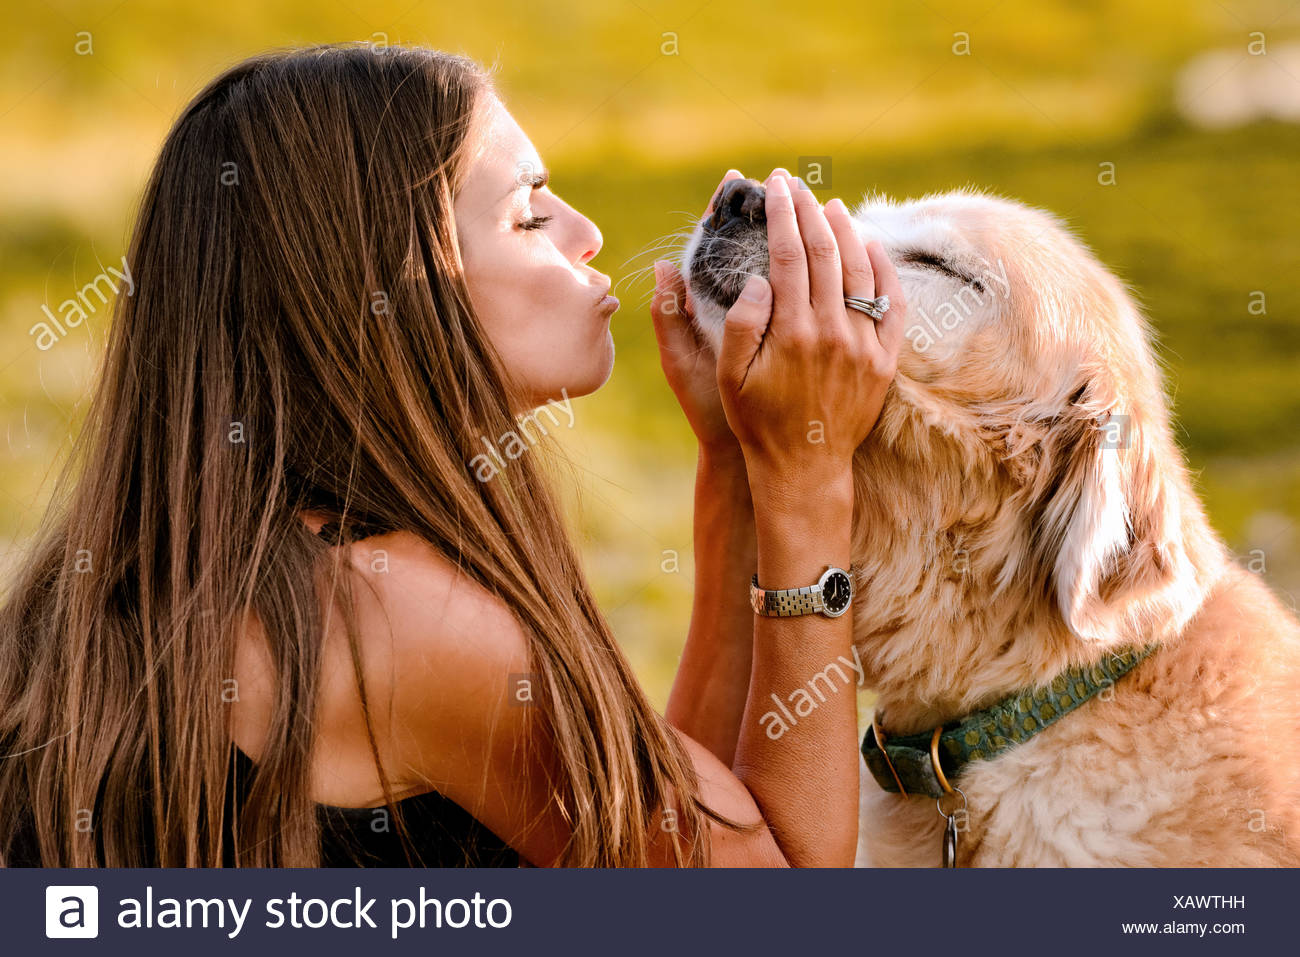 Portrait of woman with golden retriever - Stock Image